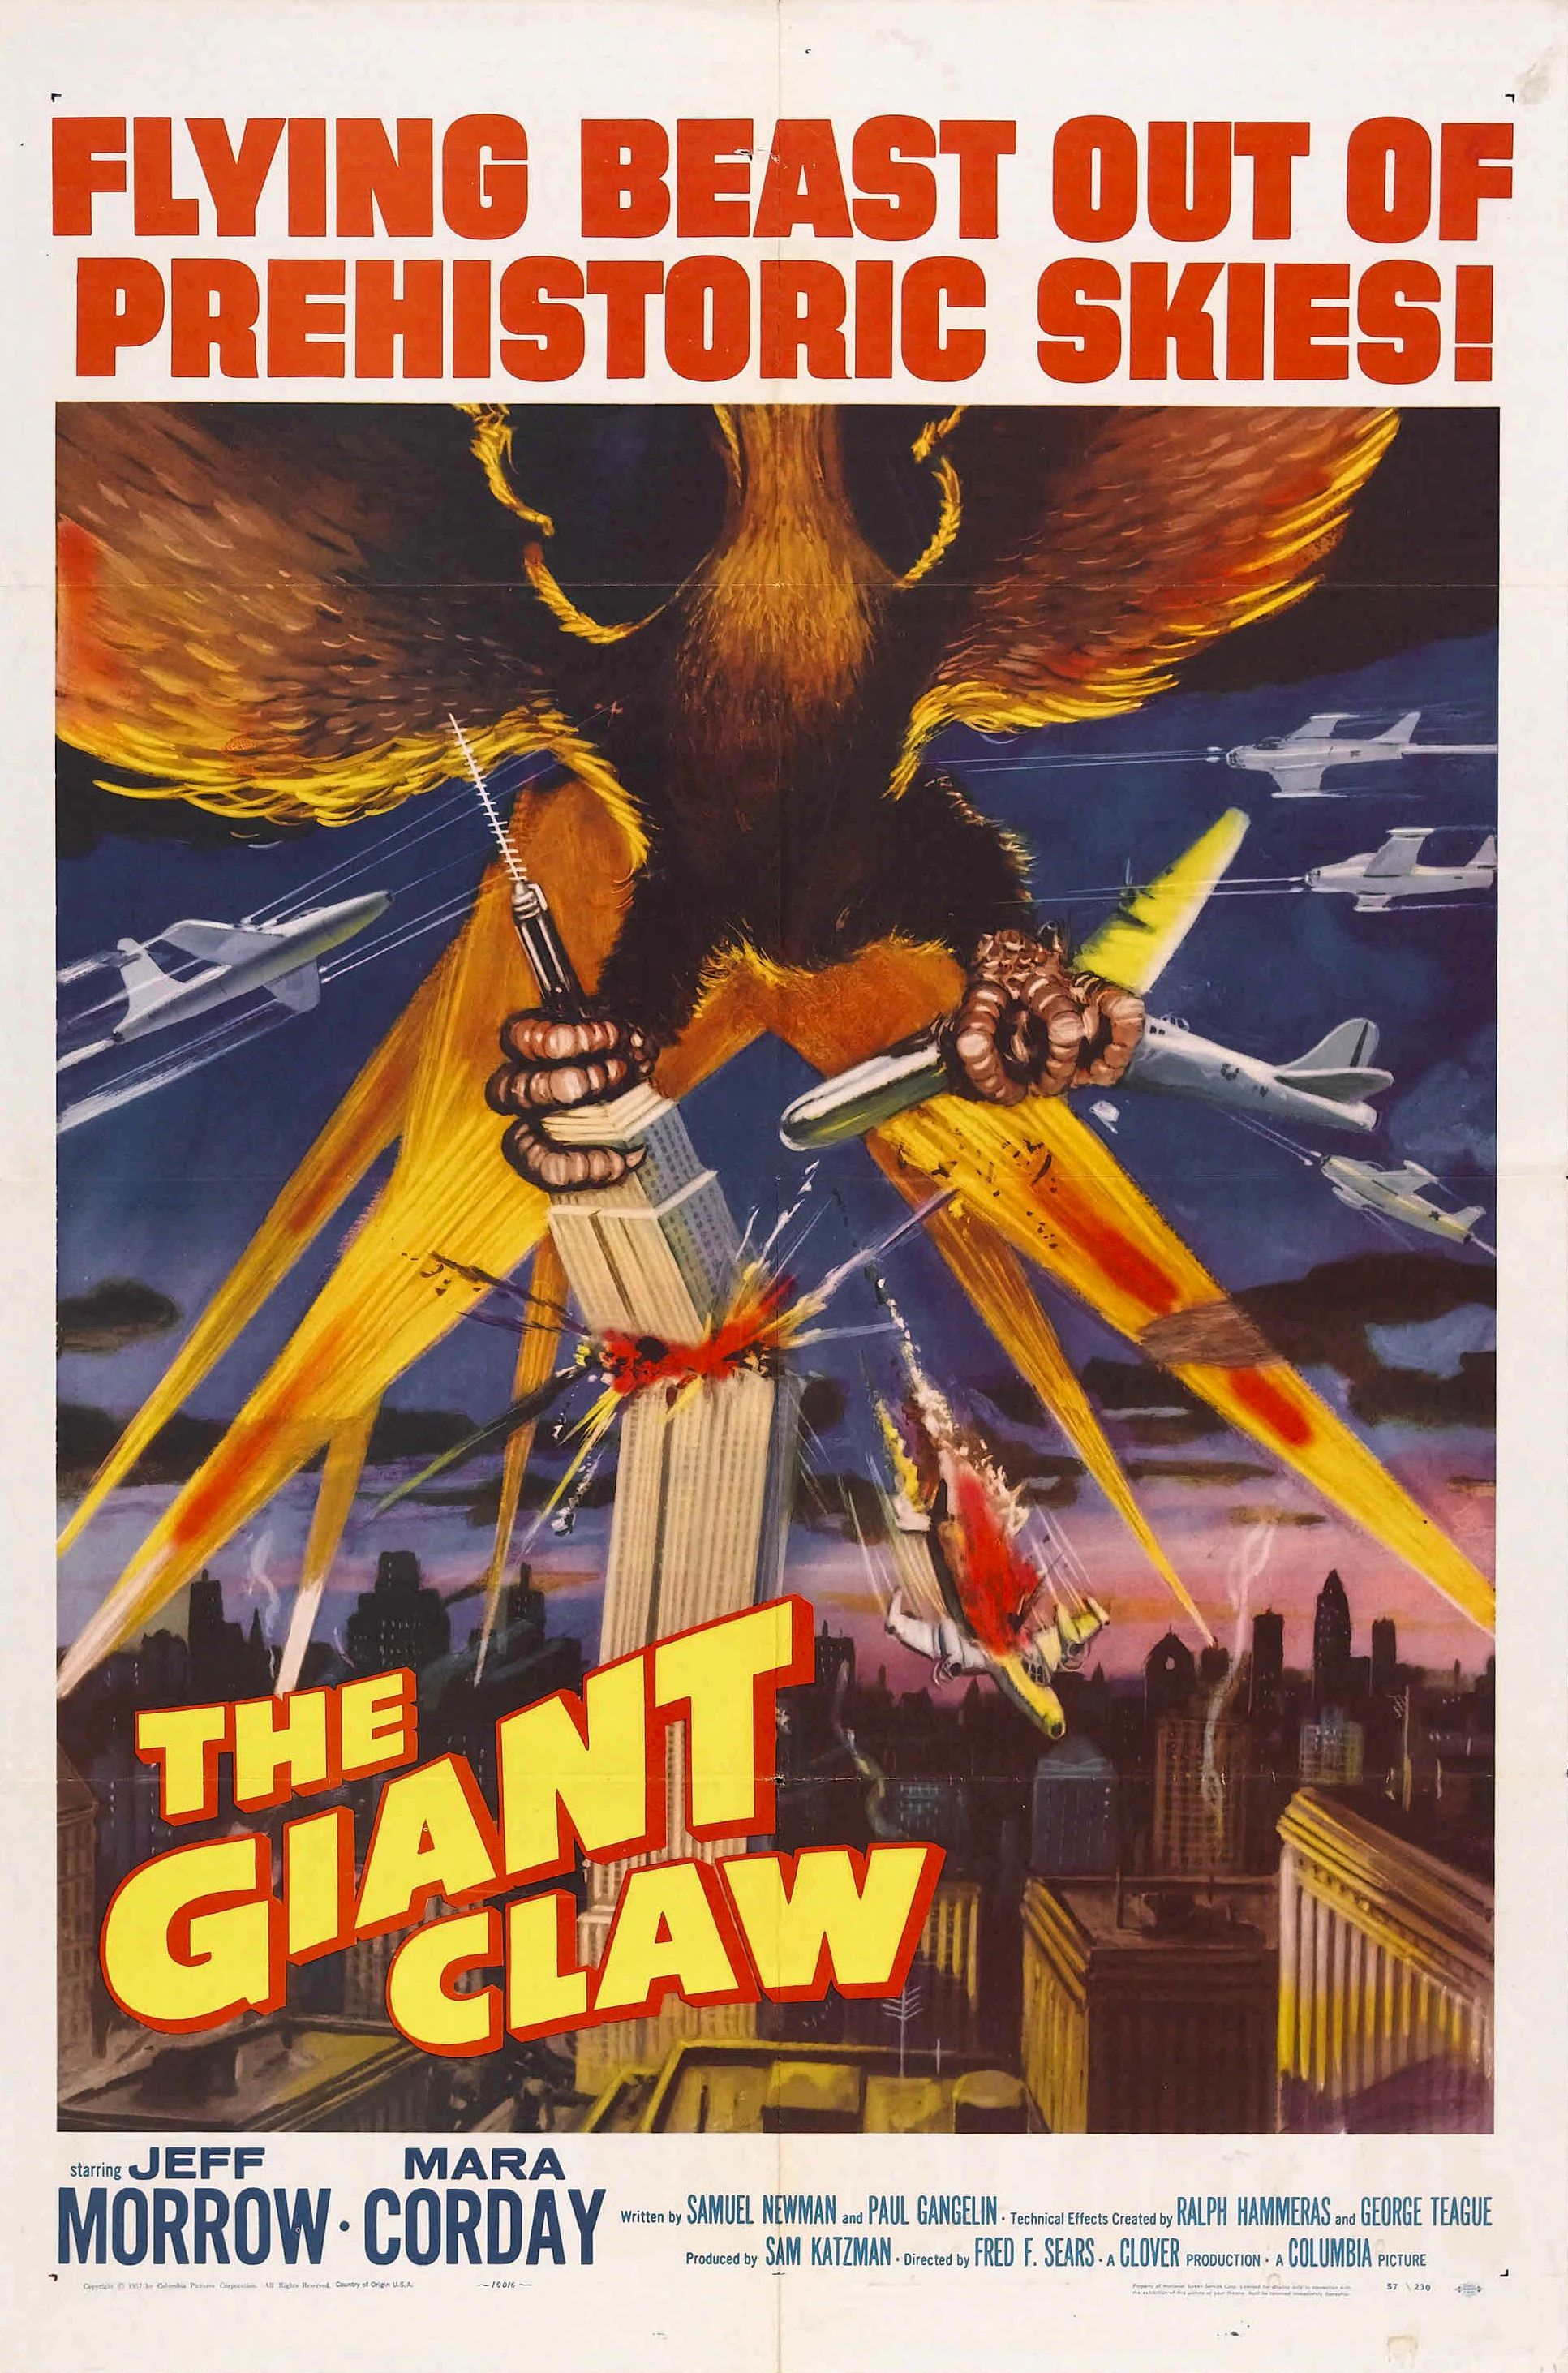 giant_claw_poster_1957_02.jpg